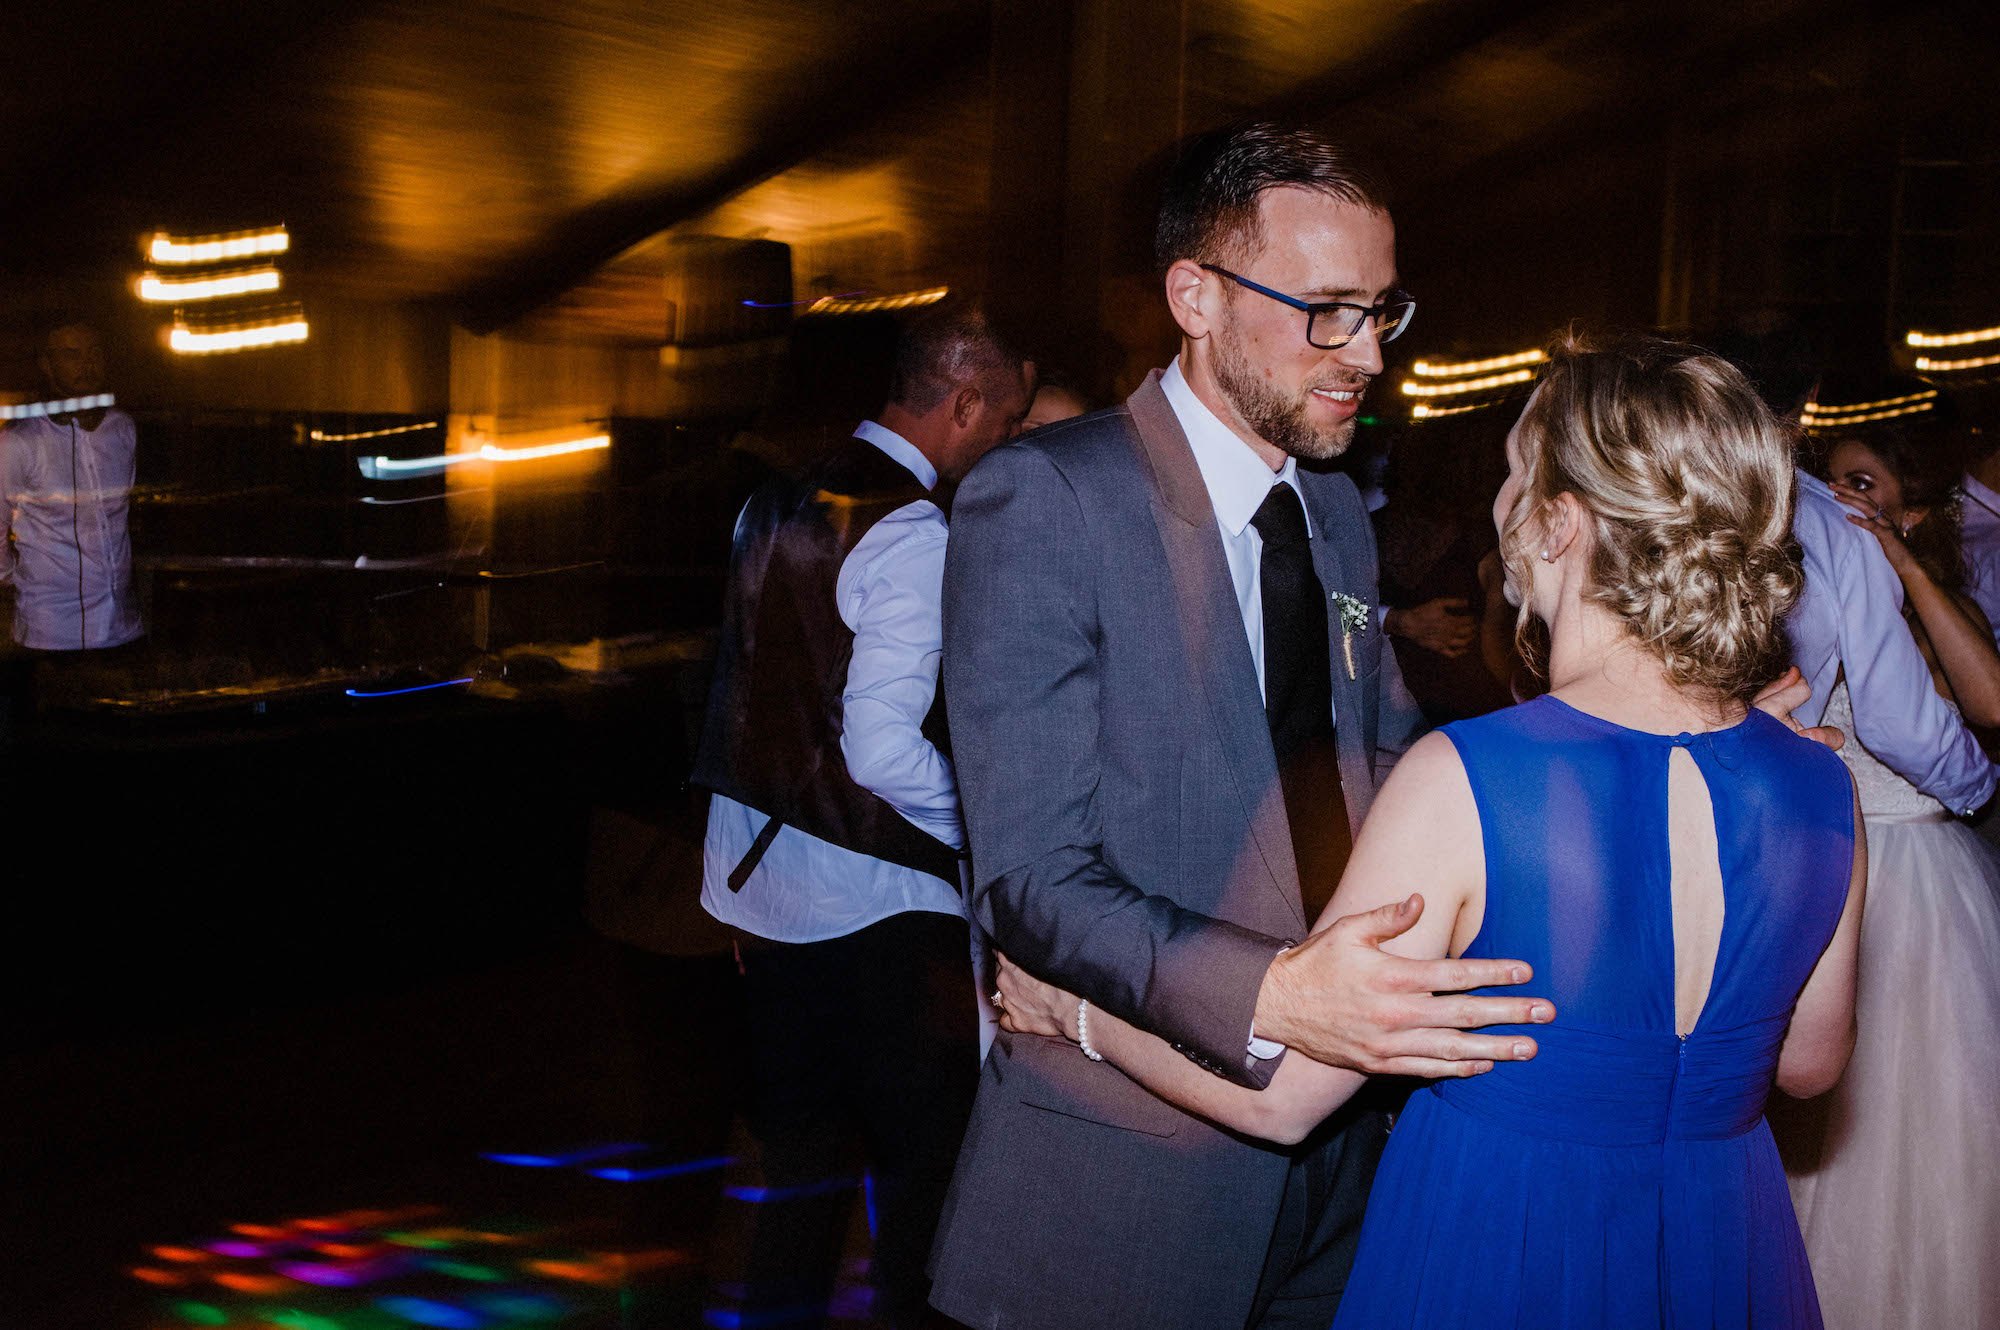 Guests dances together at a Byford wedding reception.